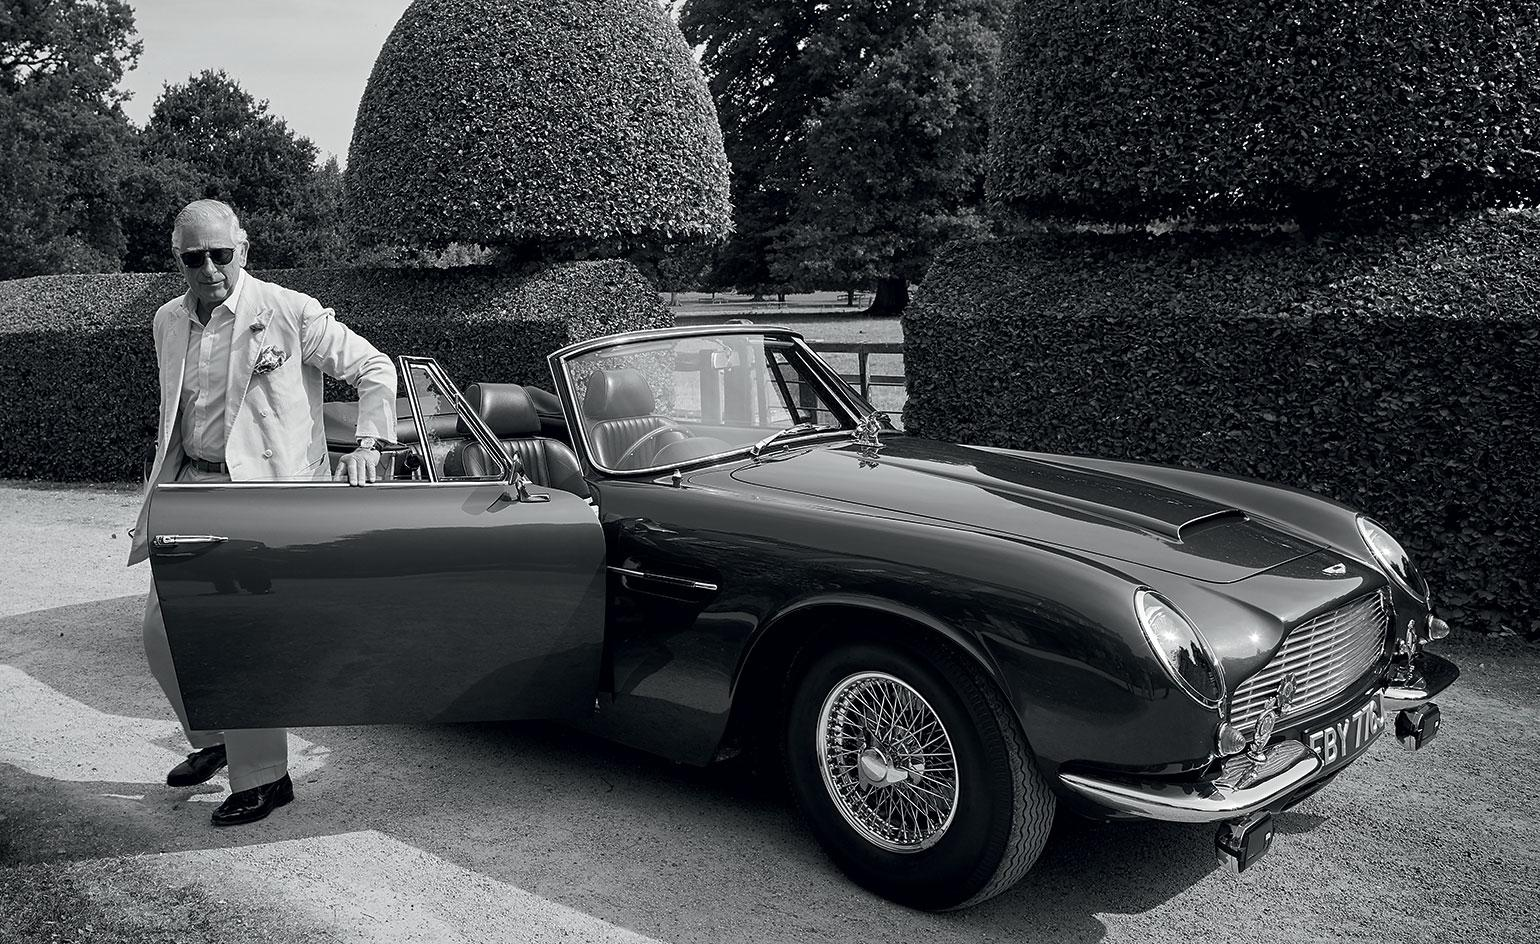 '69-aston-martin-db6-vantage-volante-that-runs-on-wine-and-cheese-is-an-upgraded-classic